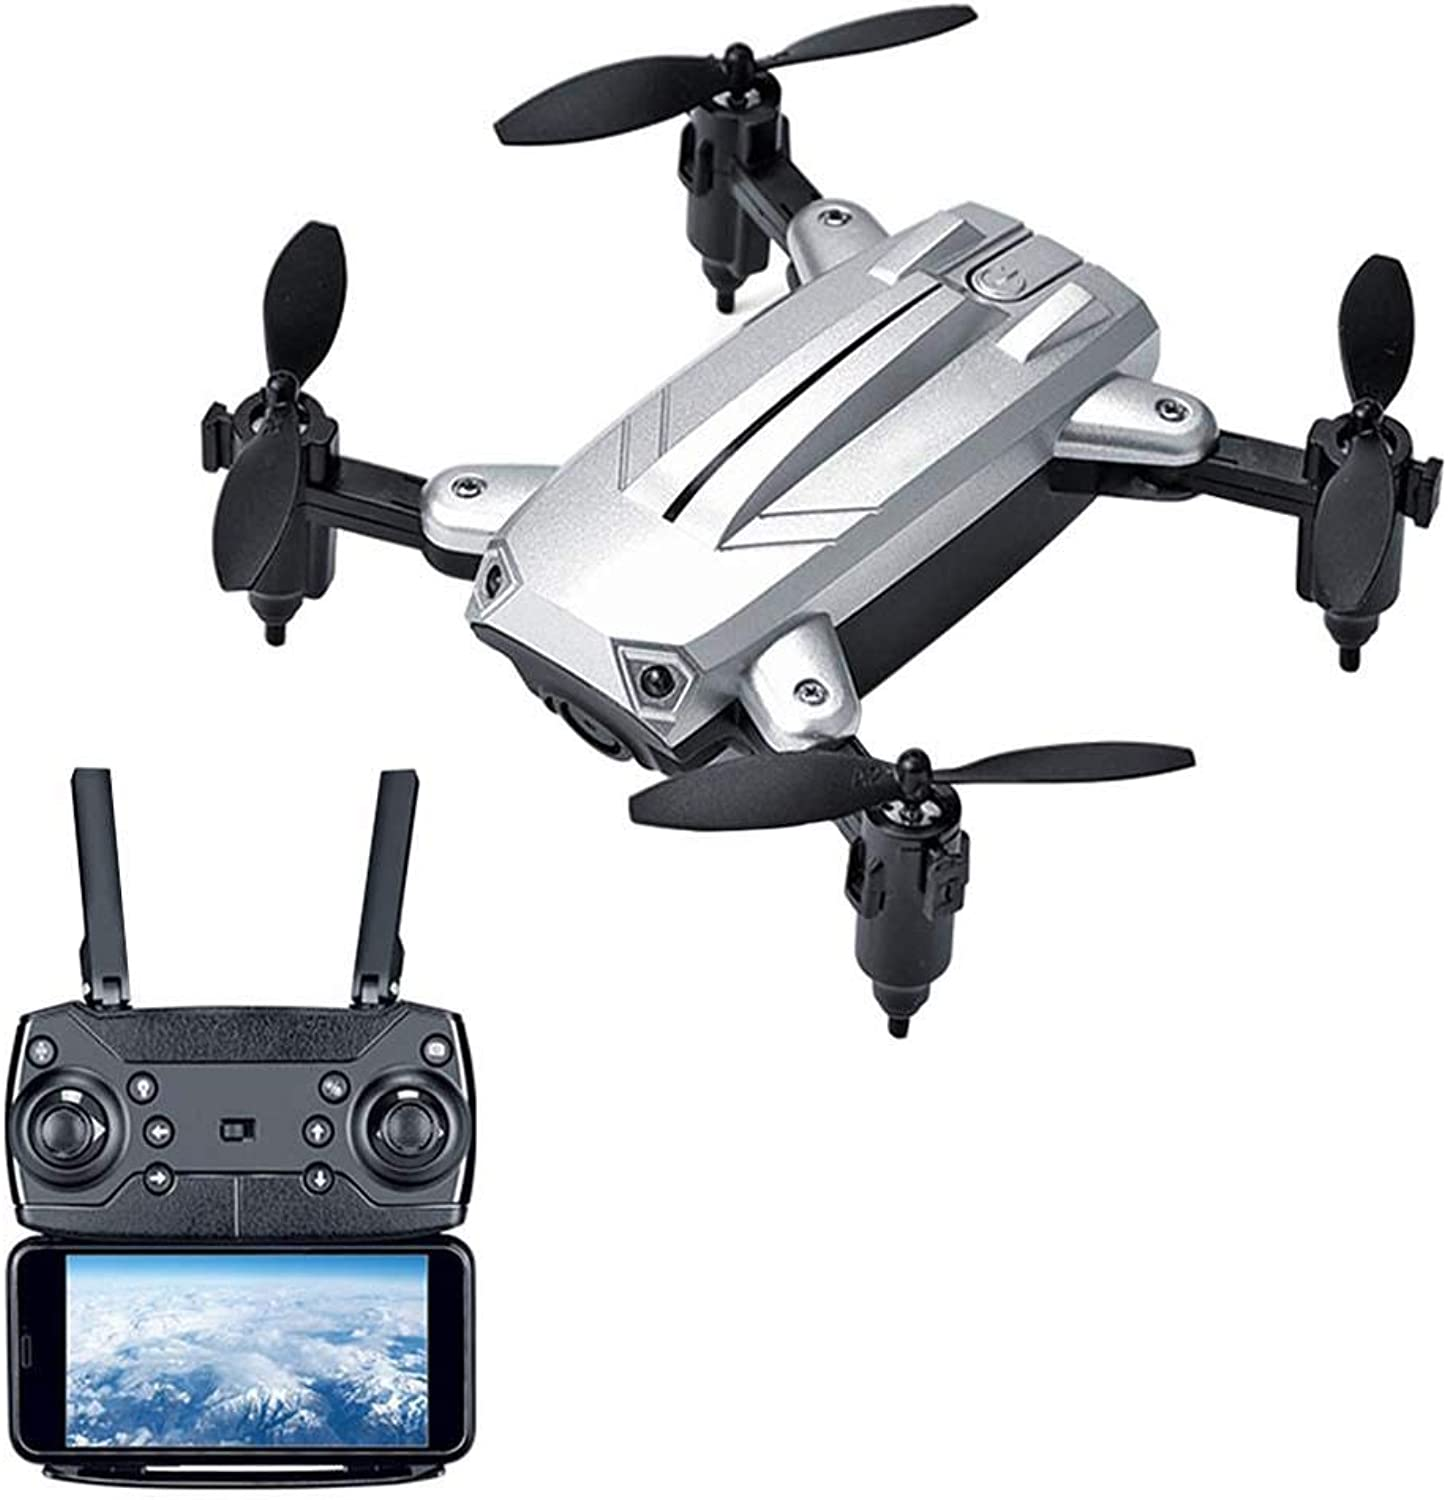 KY301 Altitude Hold Mini Folding Quadcopter WiFi RealTime Aerial Drone Remote Control Aircraft